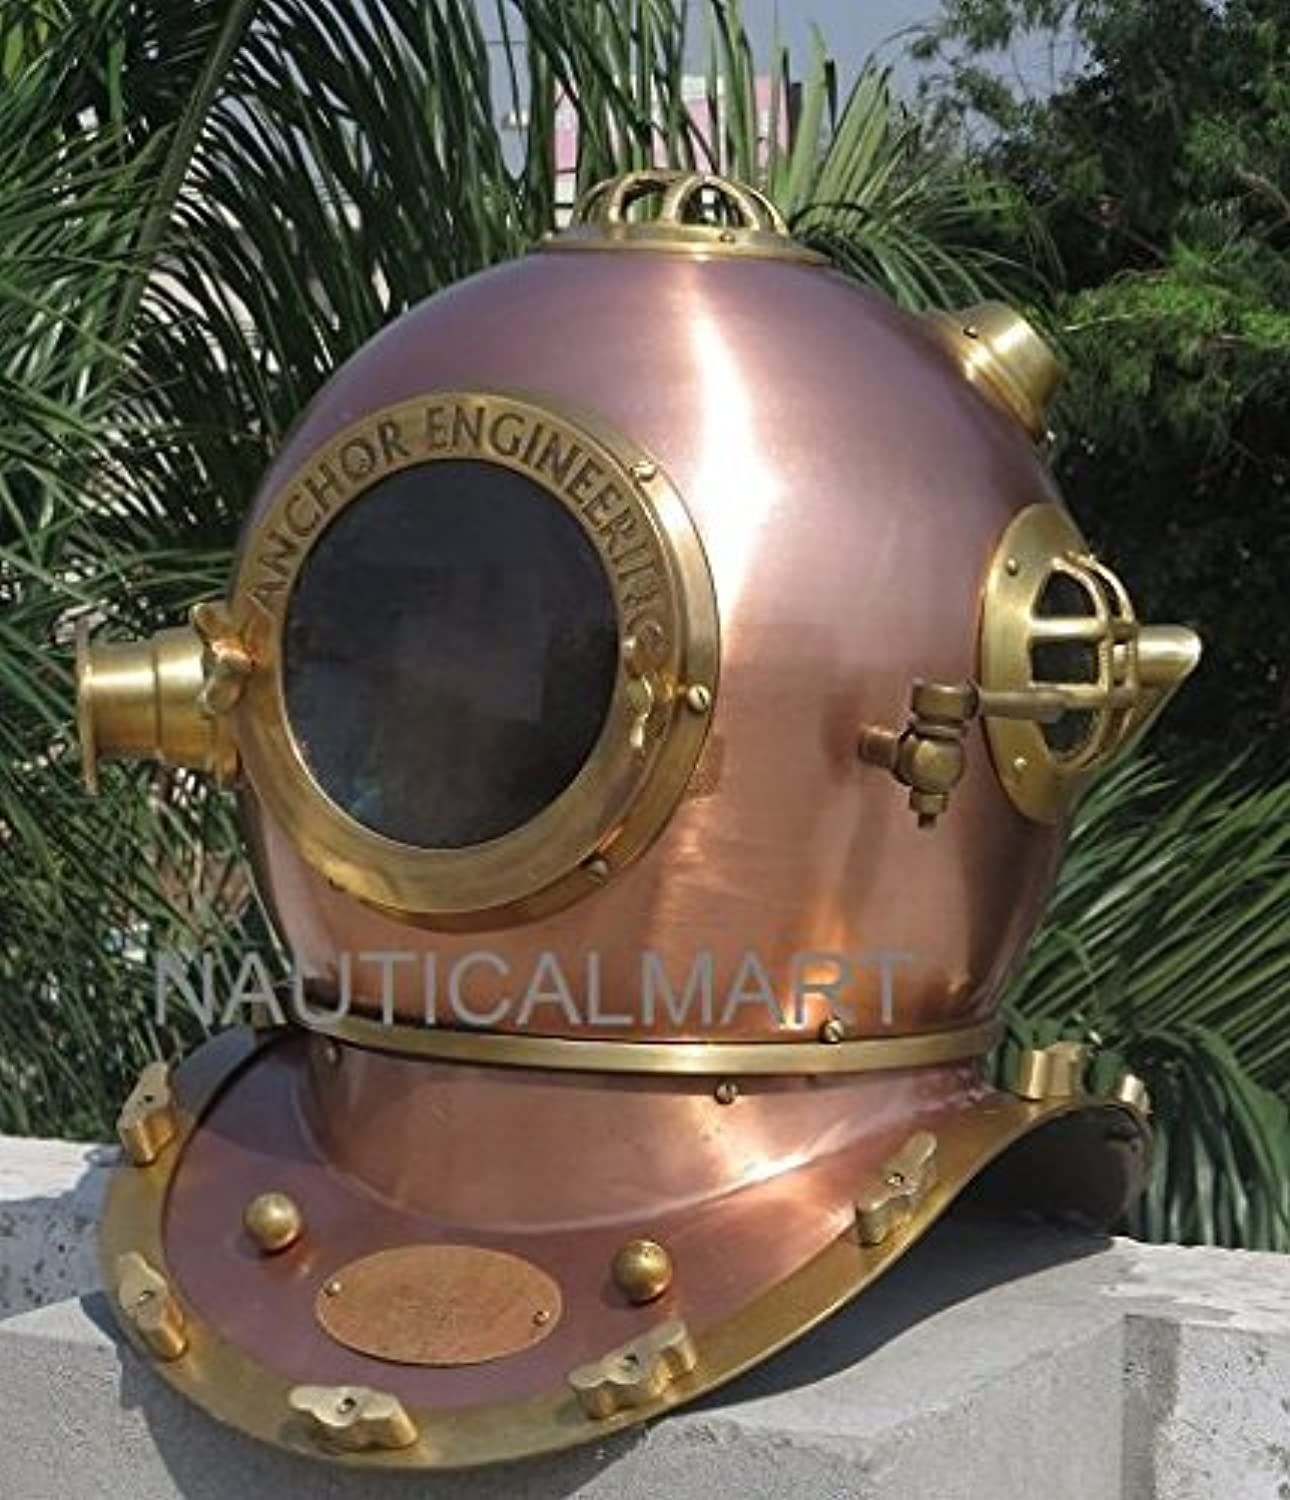 NAUTICALMART Copper and Brass Antique Diving Divers Helmet